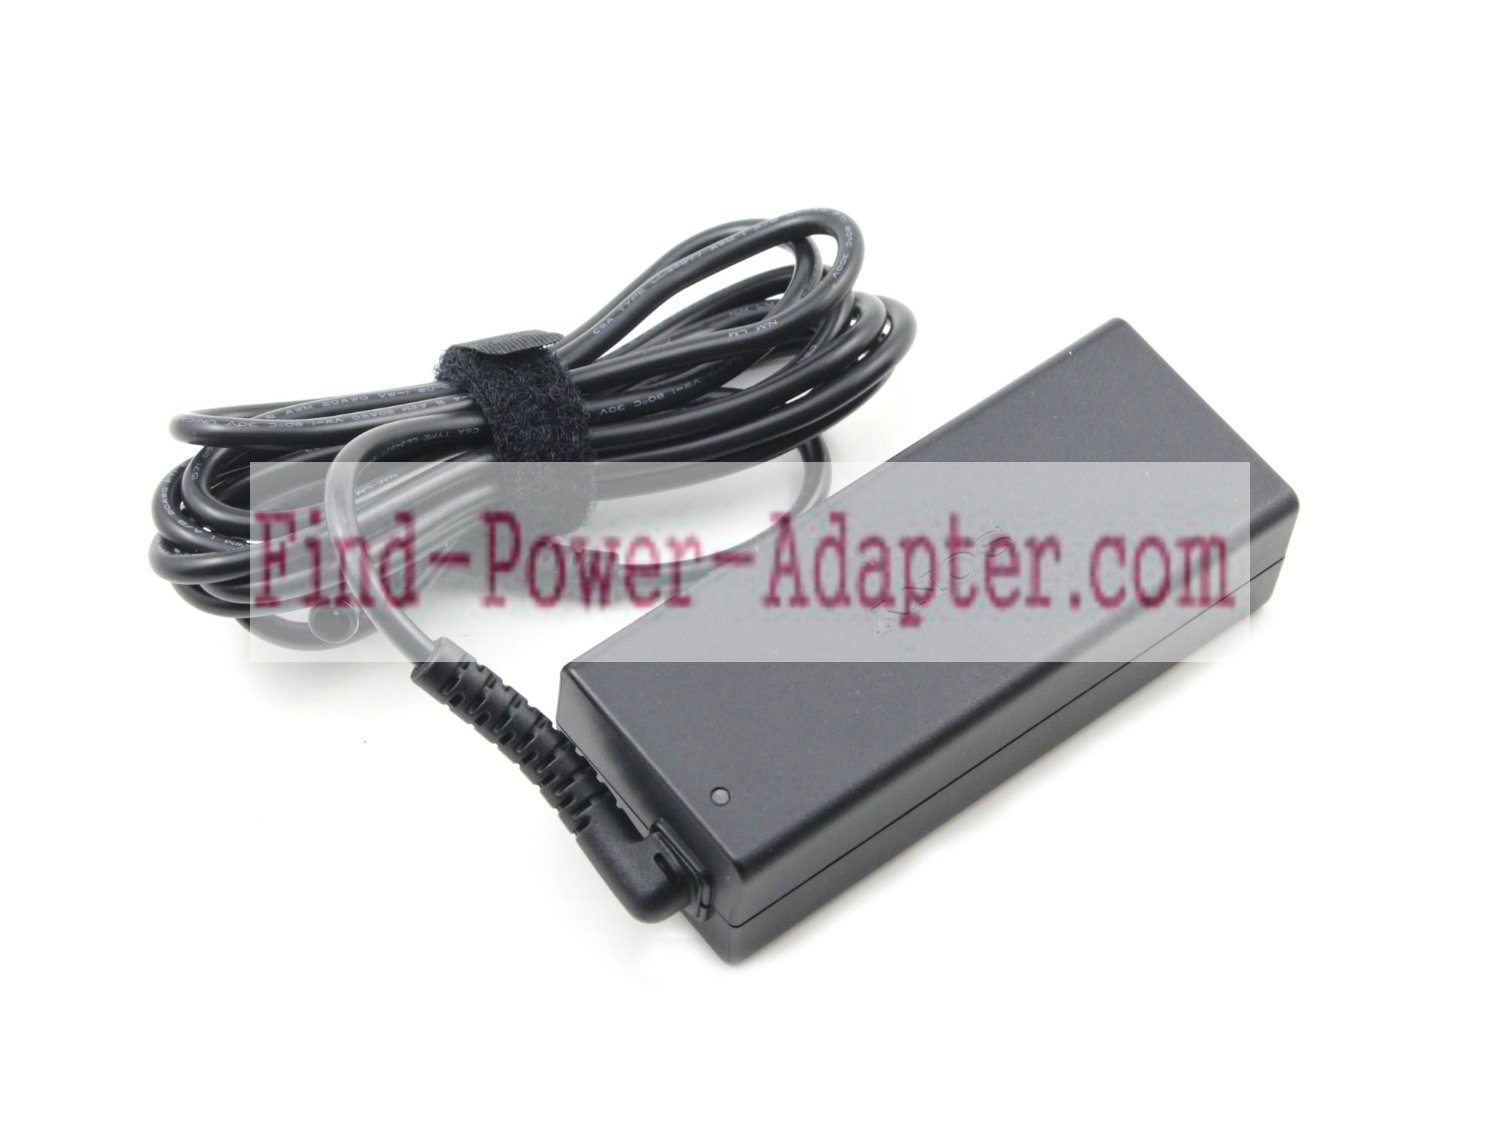 ADP-40XH A VGP-AC19V39 PA-1400-08SY Sony 19.5V 2A AC Power Adapter